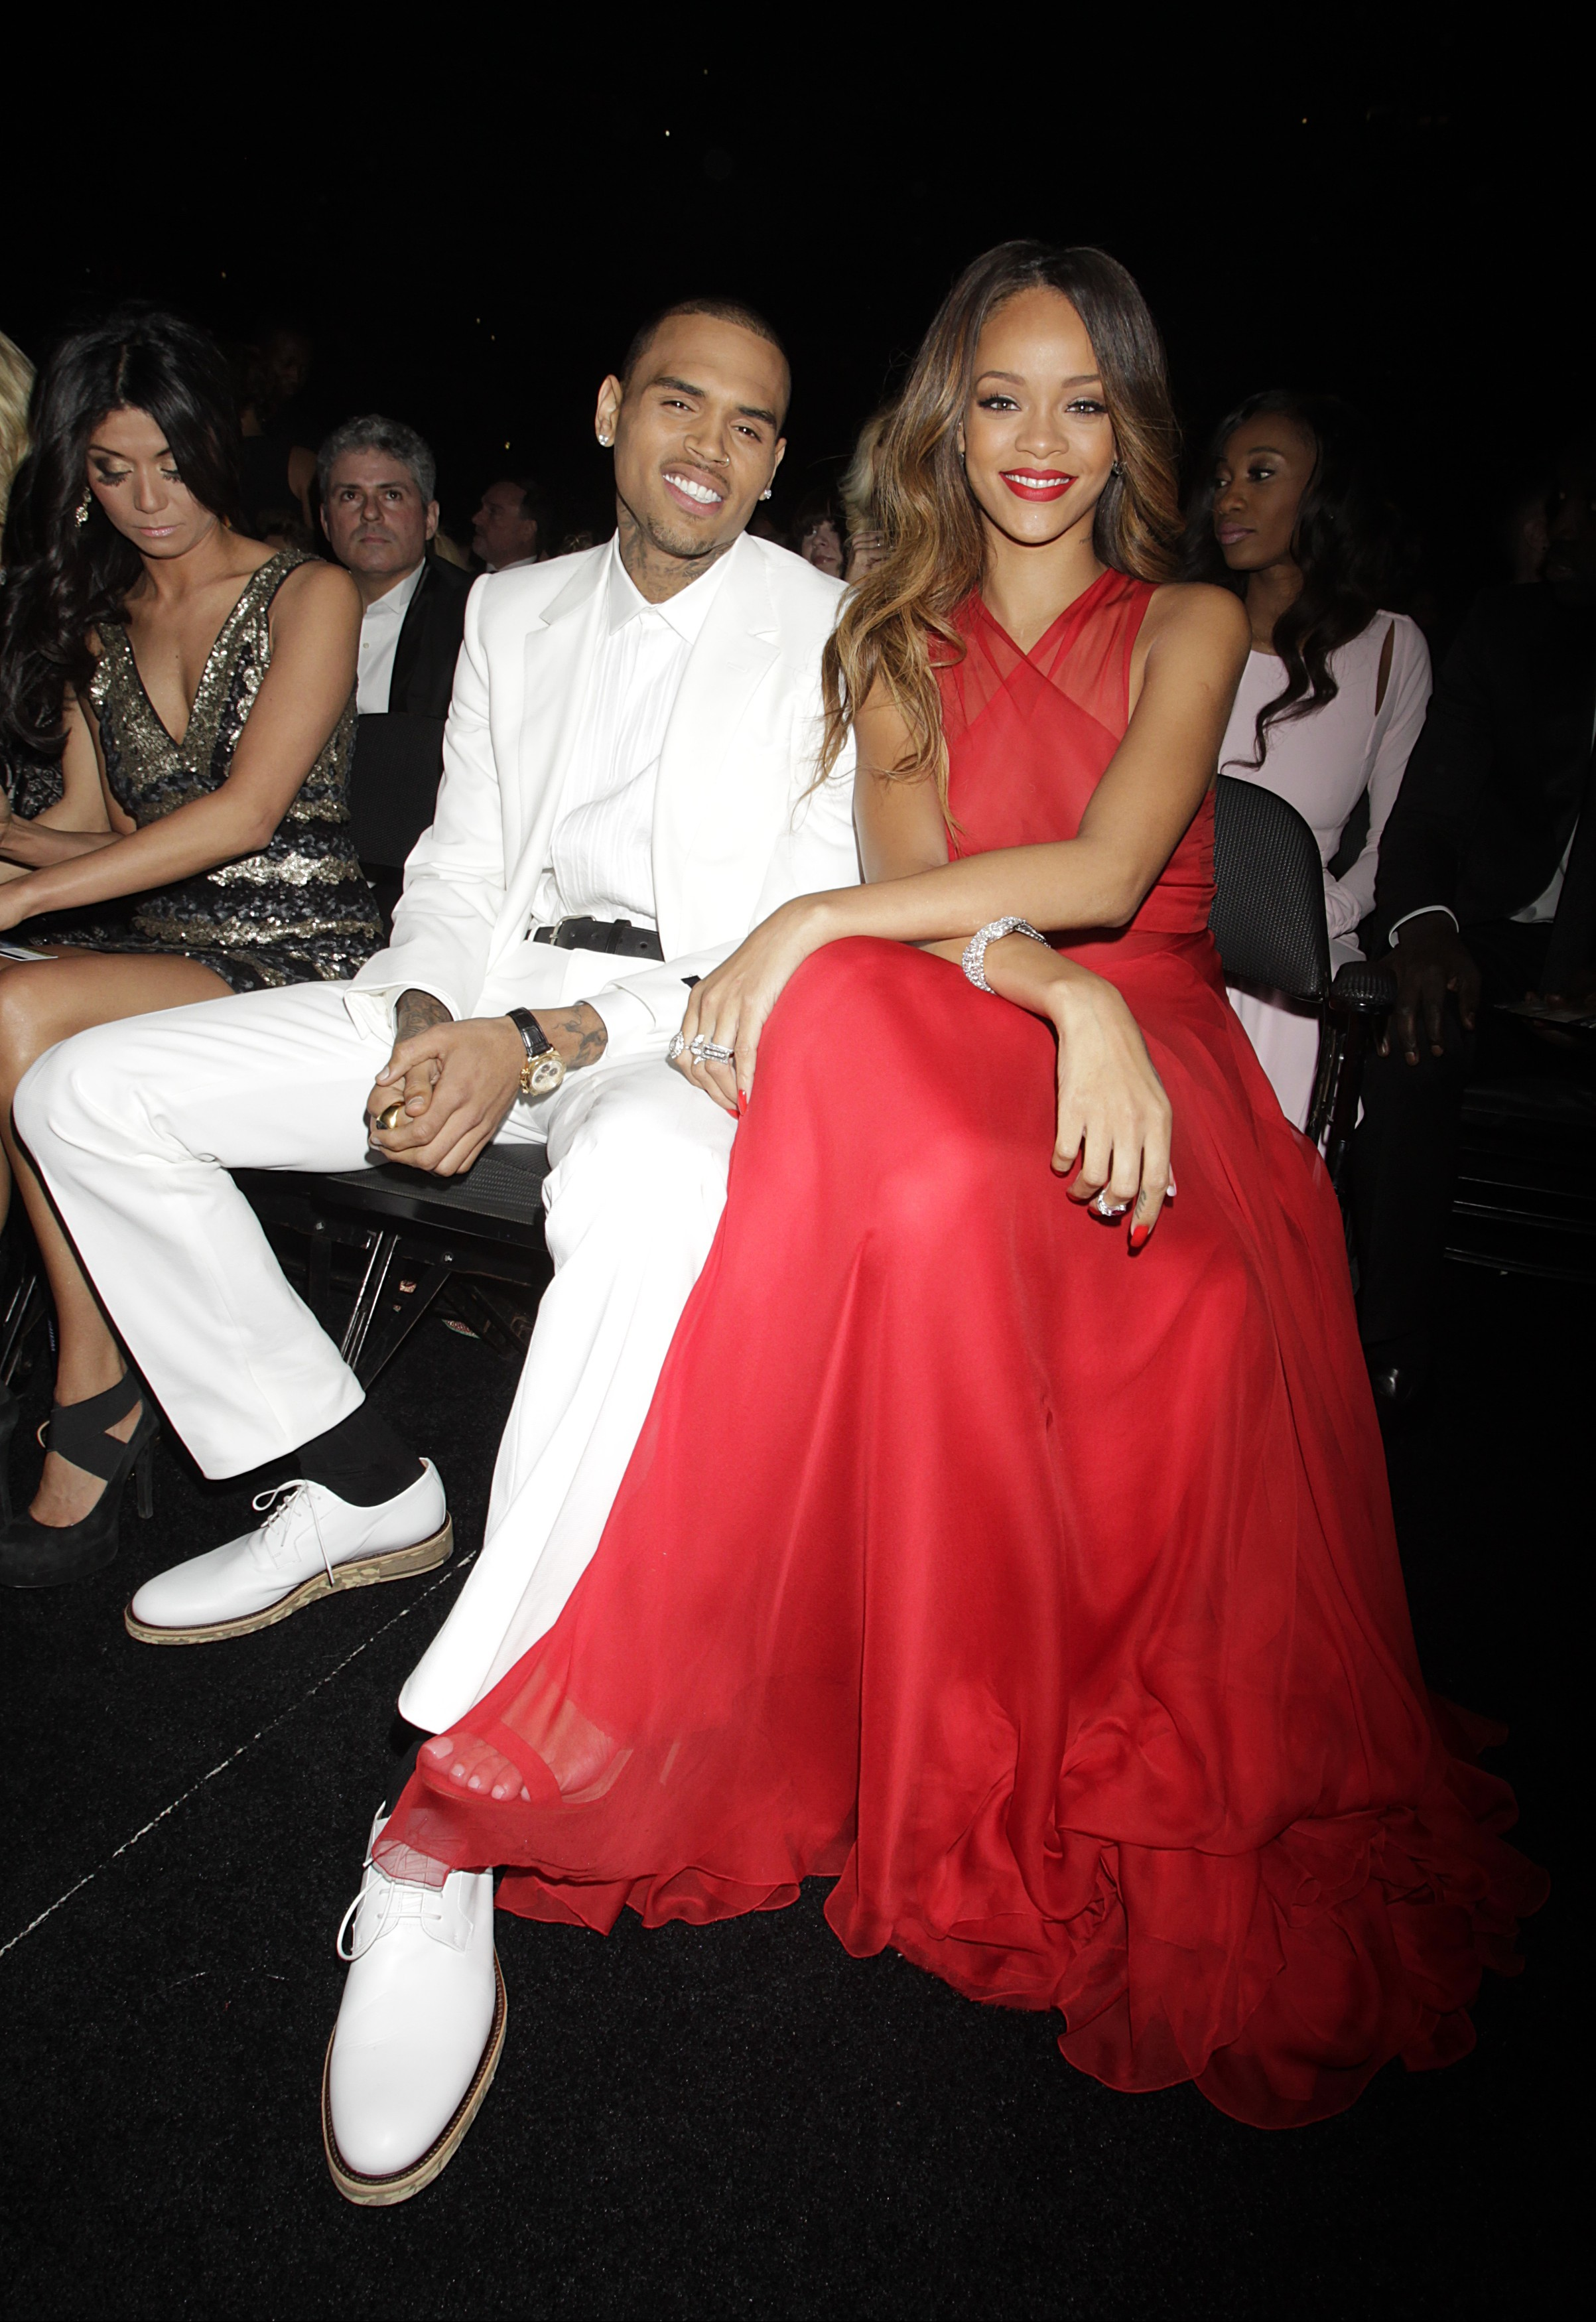 Chris Browns Christmas Present For Daughter Could Kill Her chris and rihanna